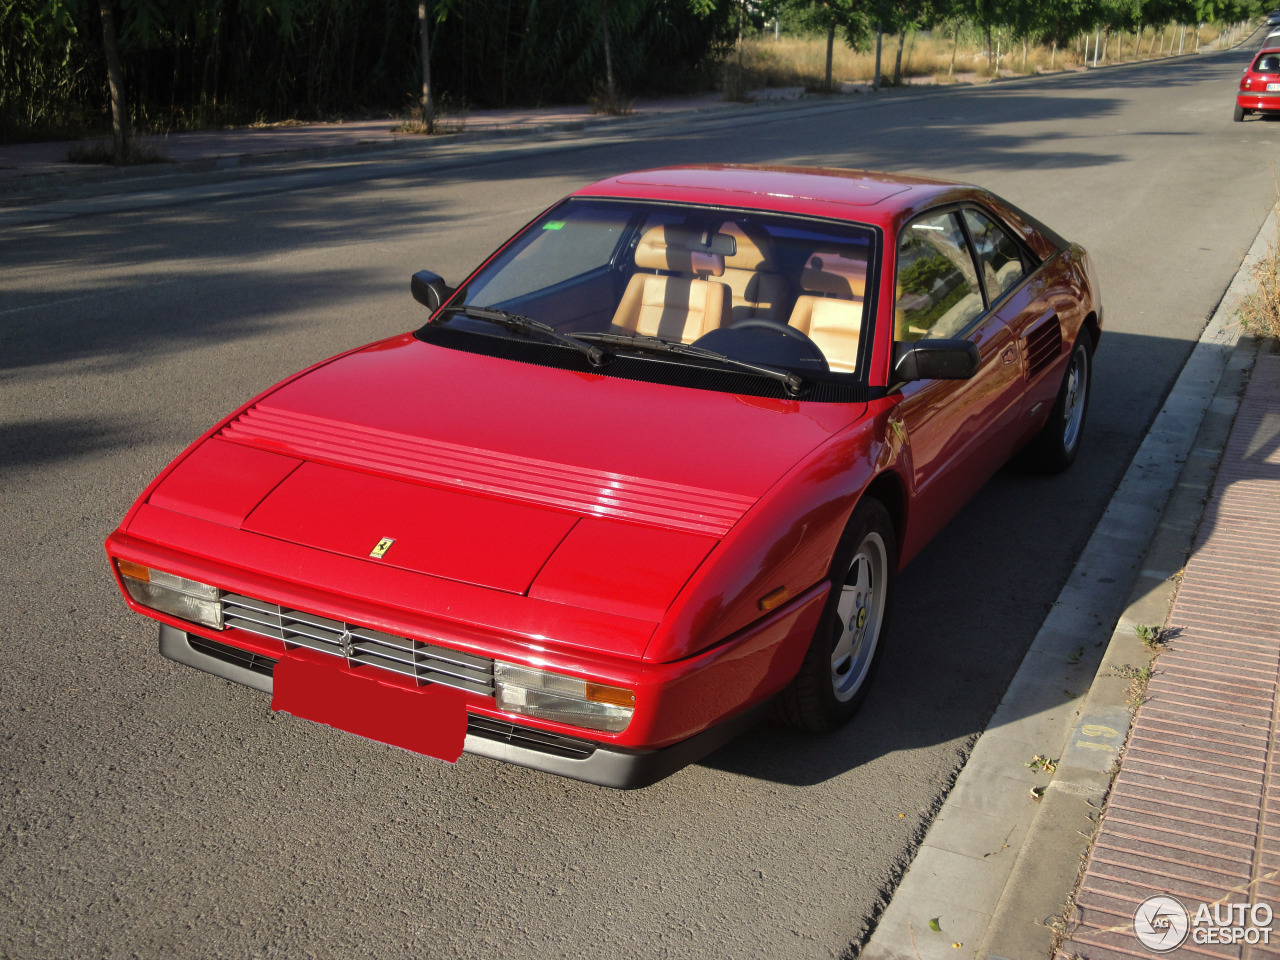 ferrari mondial en venta 1989 ferrari mondial t en venta anuncio de coches cl sicos de. Black Bedroom Furniture Sets. Home Design Ideas